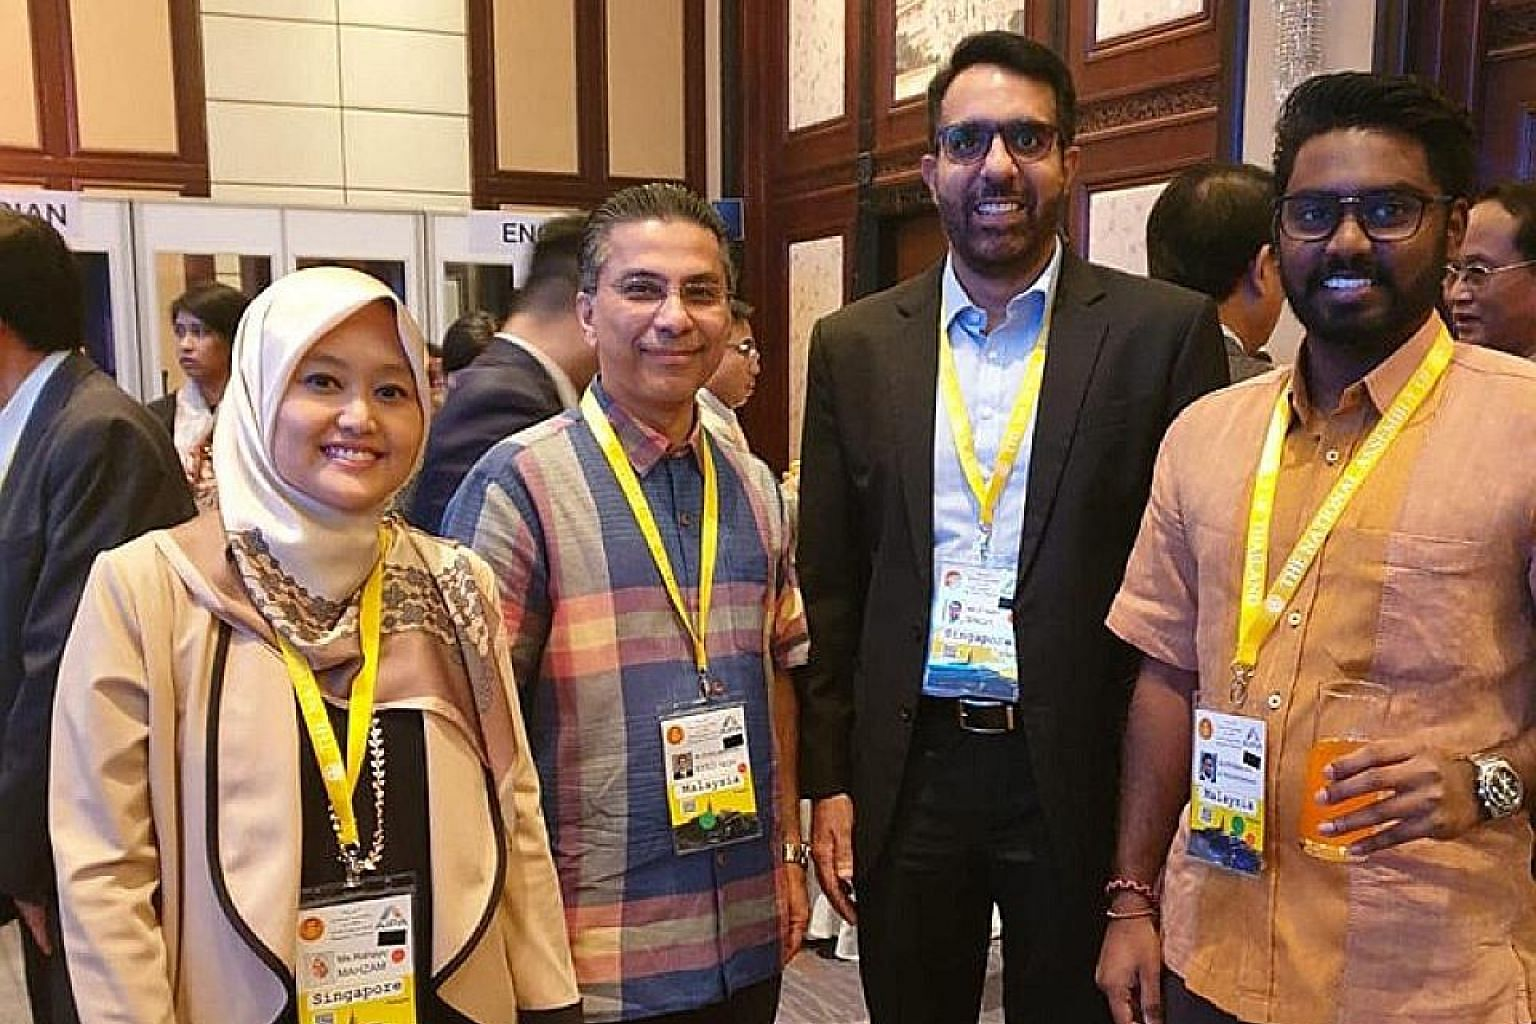 People's Action Party MP Rahayu Mahzam and her Workers' Party counterpart Pritam Singh (third from left) are part of the Singapore delegation at the Asean Inter-Parliamentary Assembly (Aipa) in Bangkok this week. They are among 12 MPs who are attendi